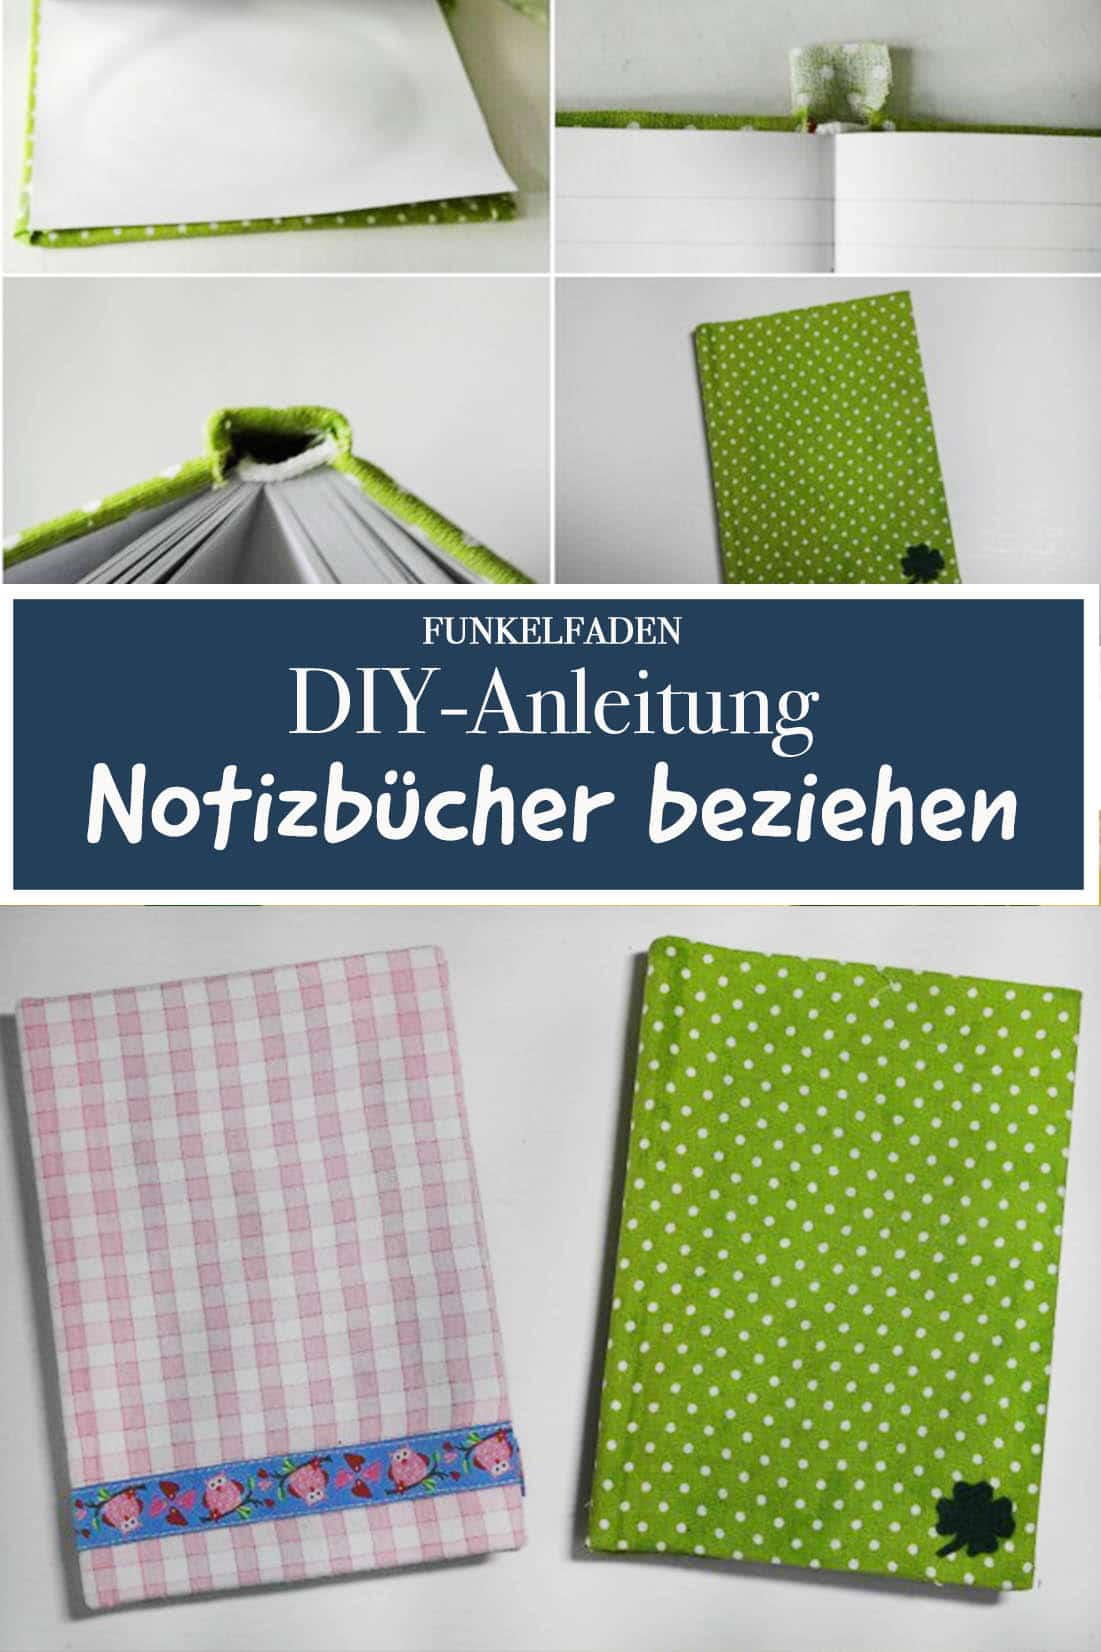 diy anleitung zum beziehen von b chern mit stoff anleitungen do it yourself b cher mit. Black Bedroom Furniture Sets. Home Design Ideas